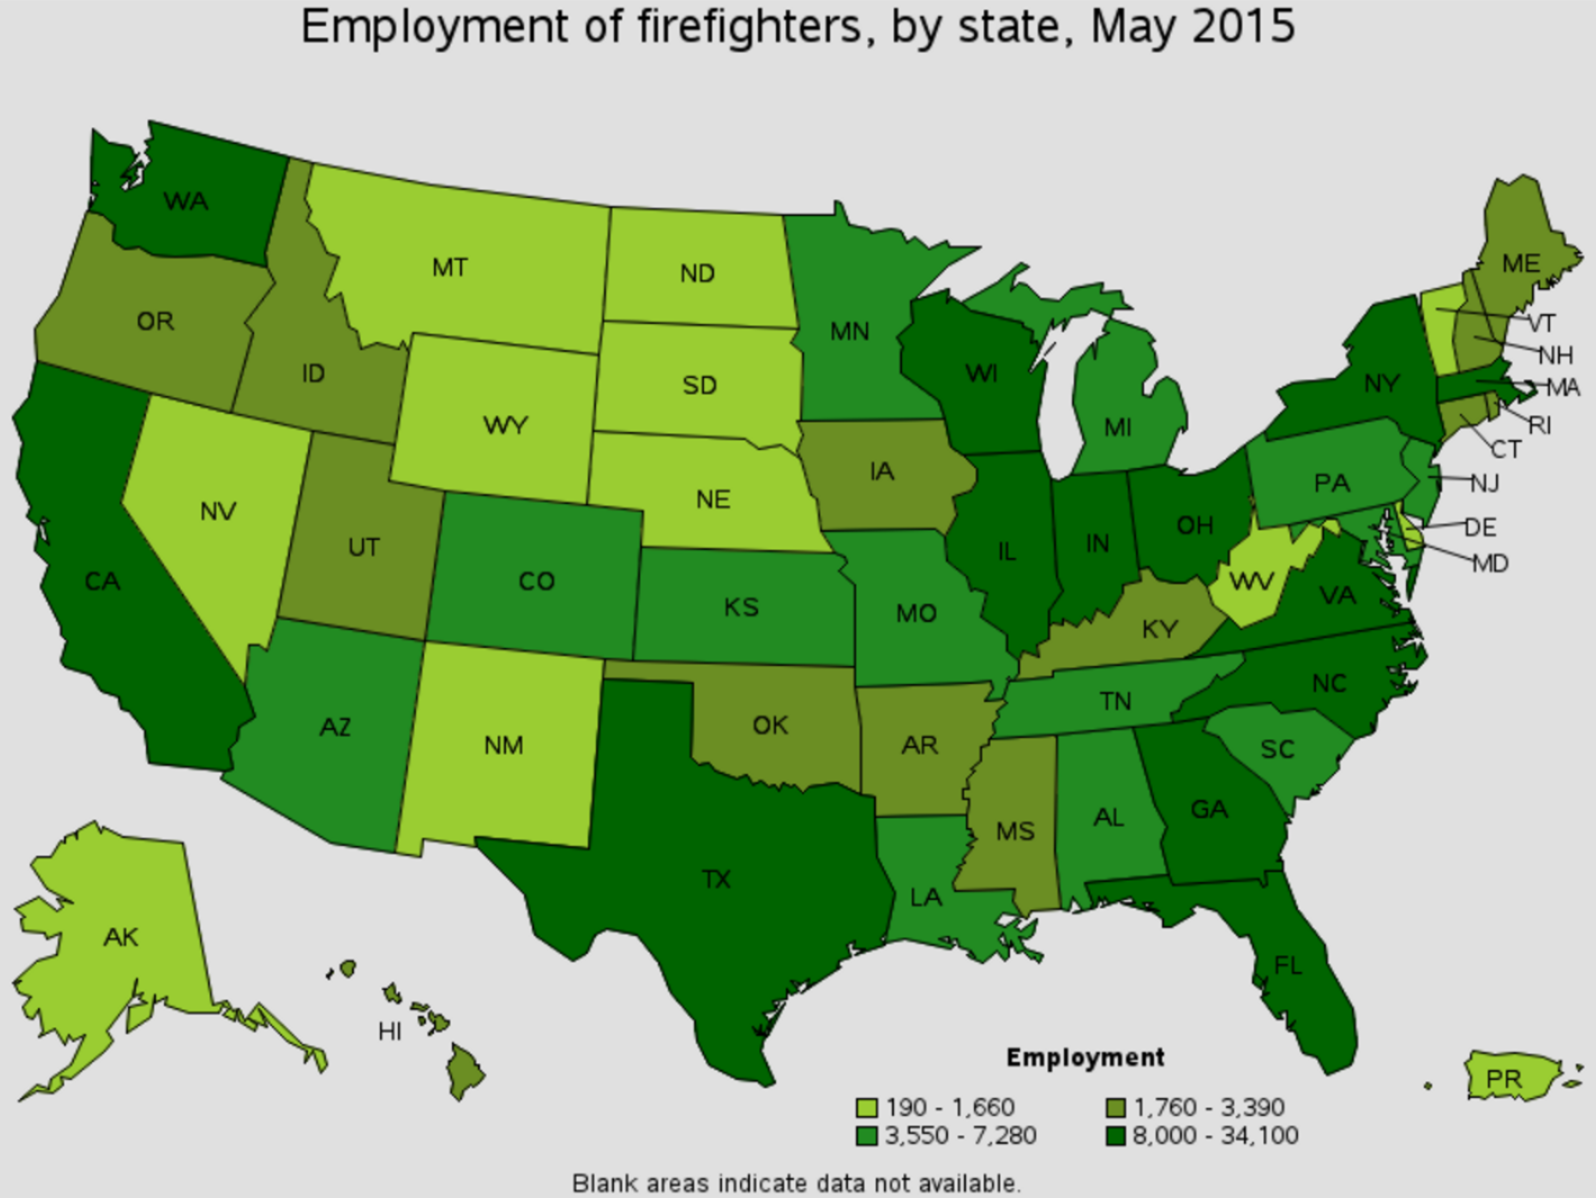 firefighter job outlook by state Yoakum Texas